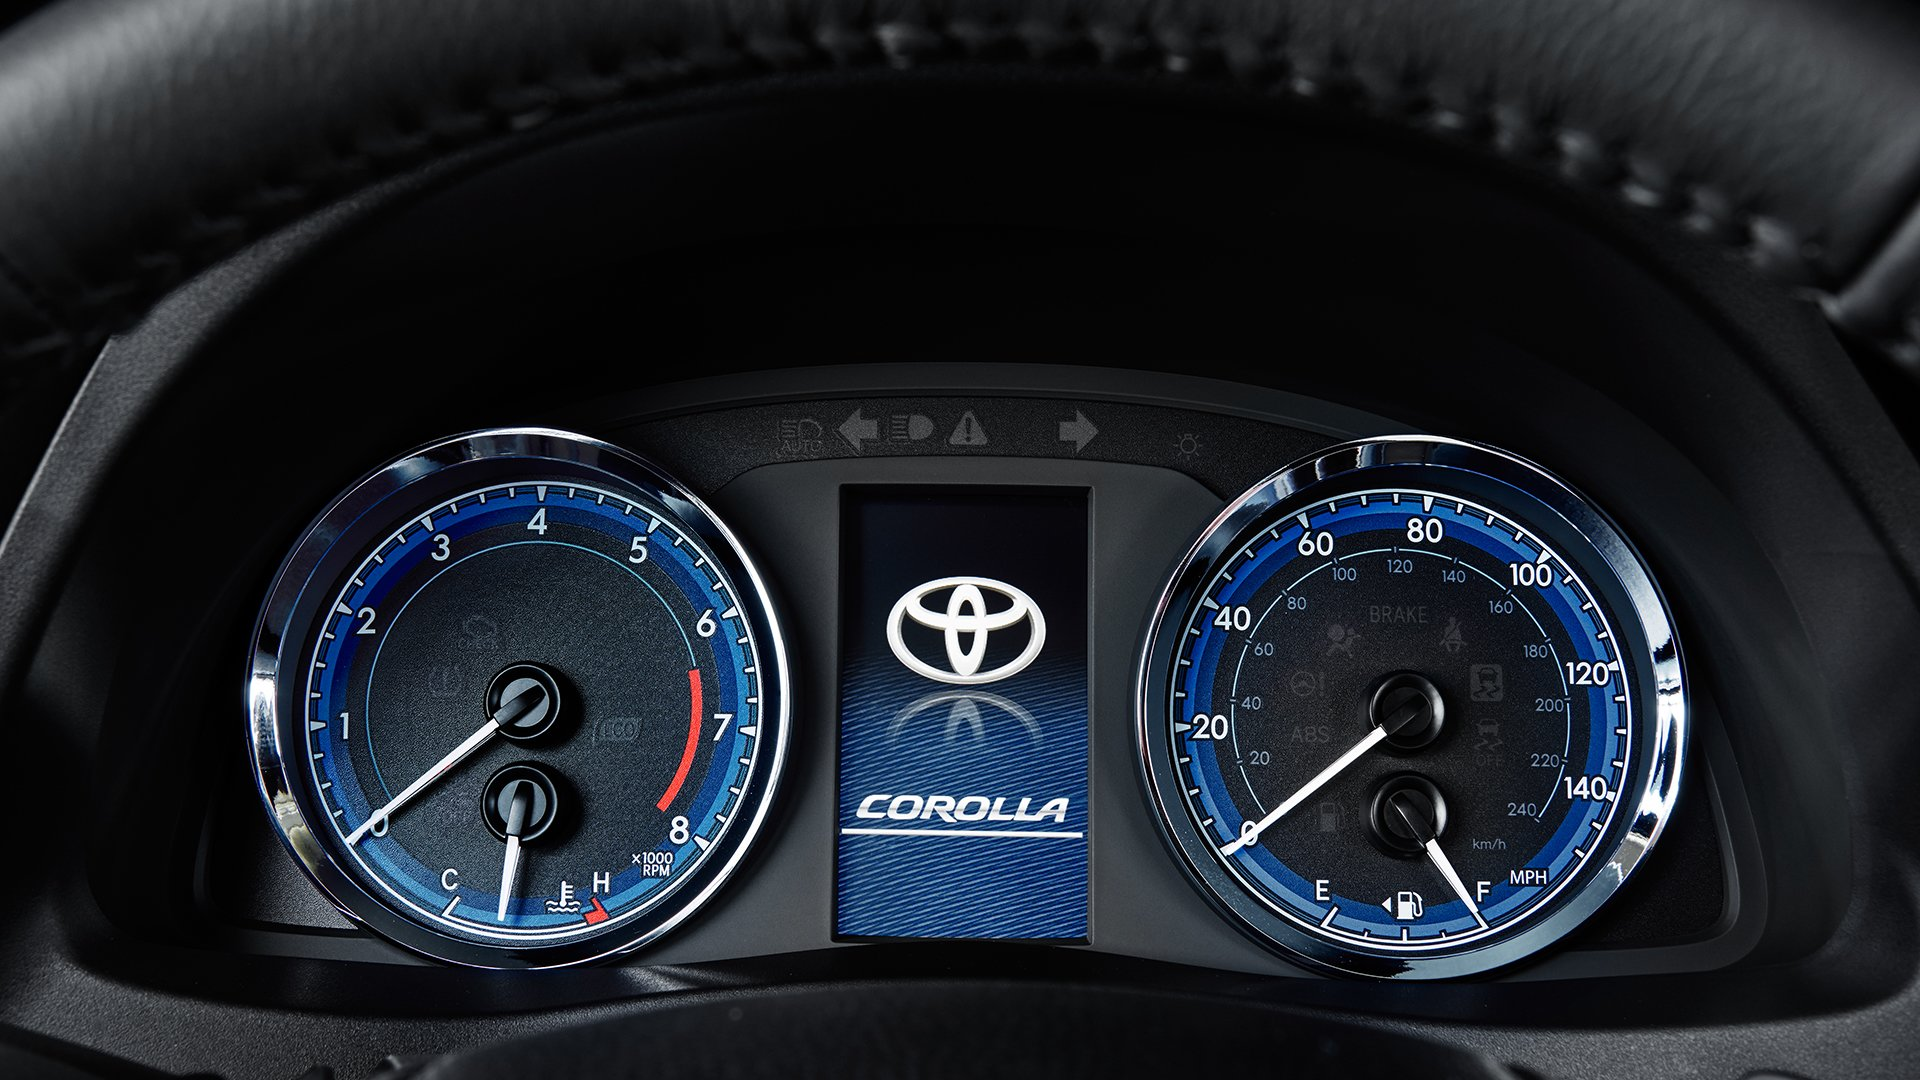 New Toyota Corolla Lease and Finance Offers Springfield IL | Green Toyota